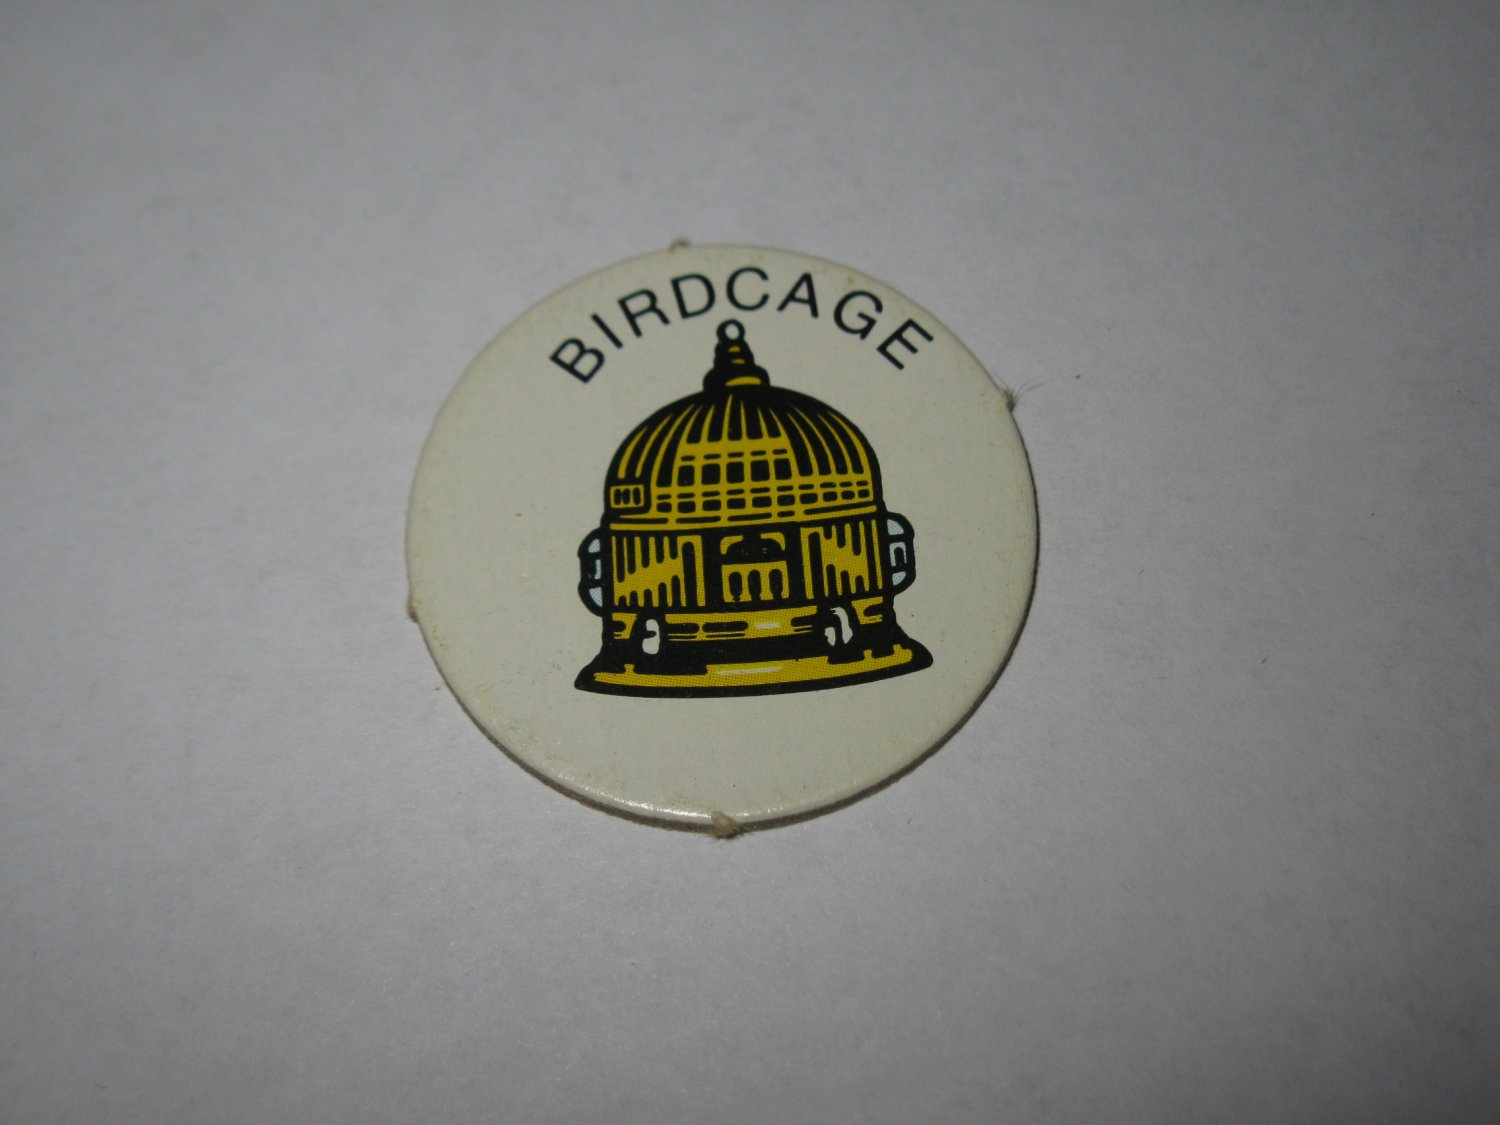 1983 Scavenger Hunt Board Game Piece: Birdcage Circle Tab